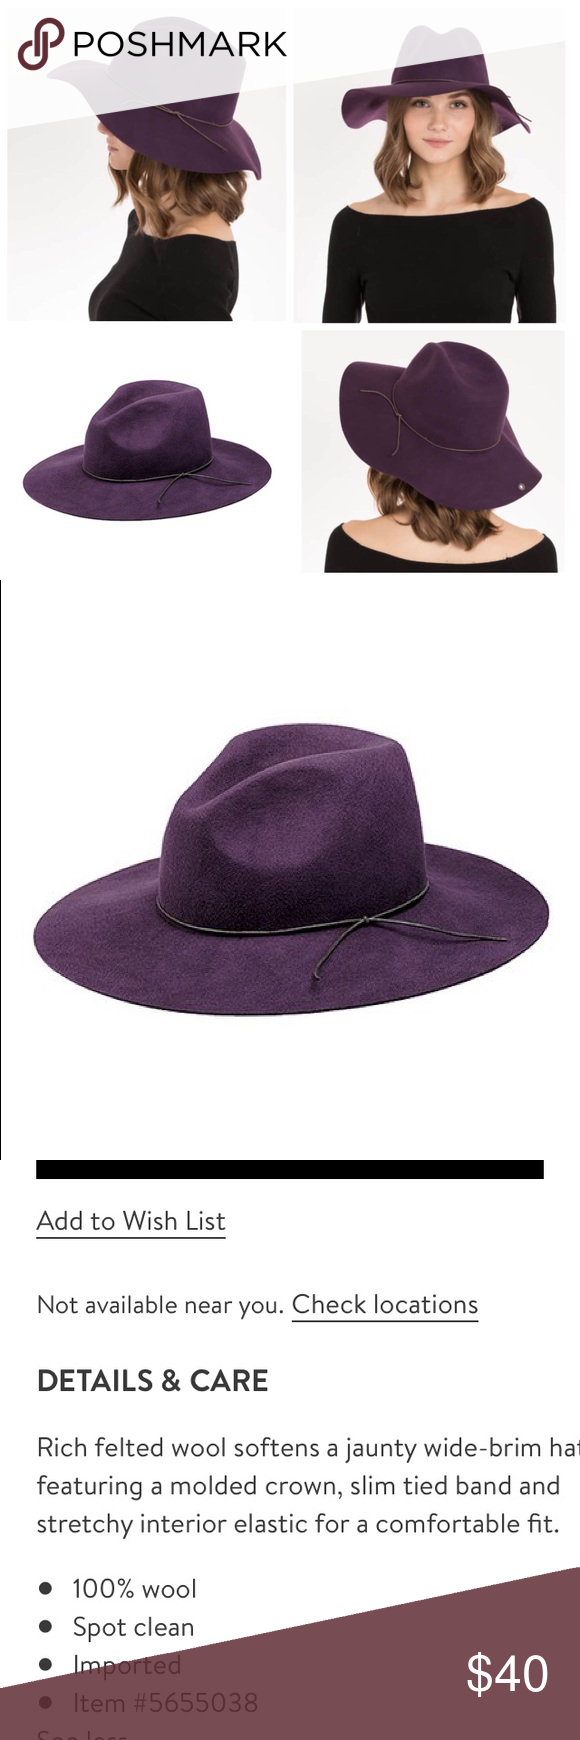 "a19cc21674cc1 Nordstrom Peter Grimm floppy wool wide brim hat Very gently used purple "" Zima"" wool"